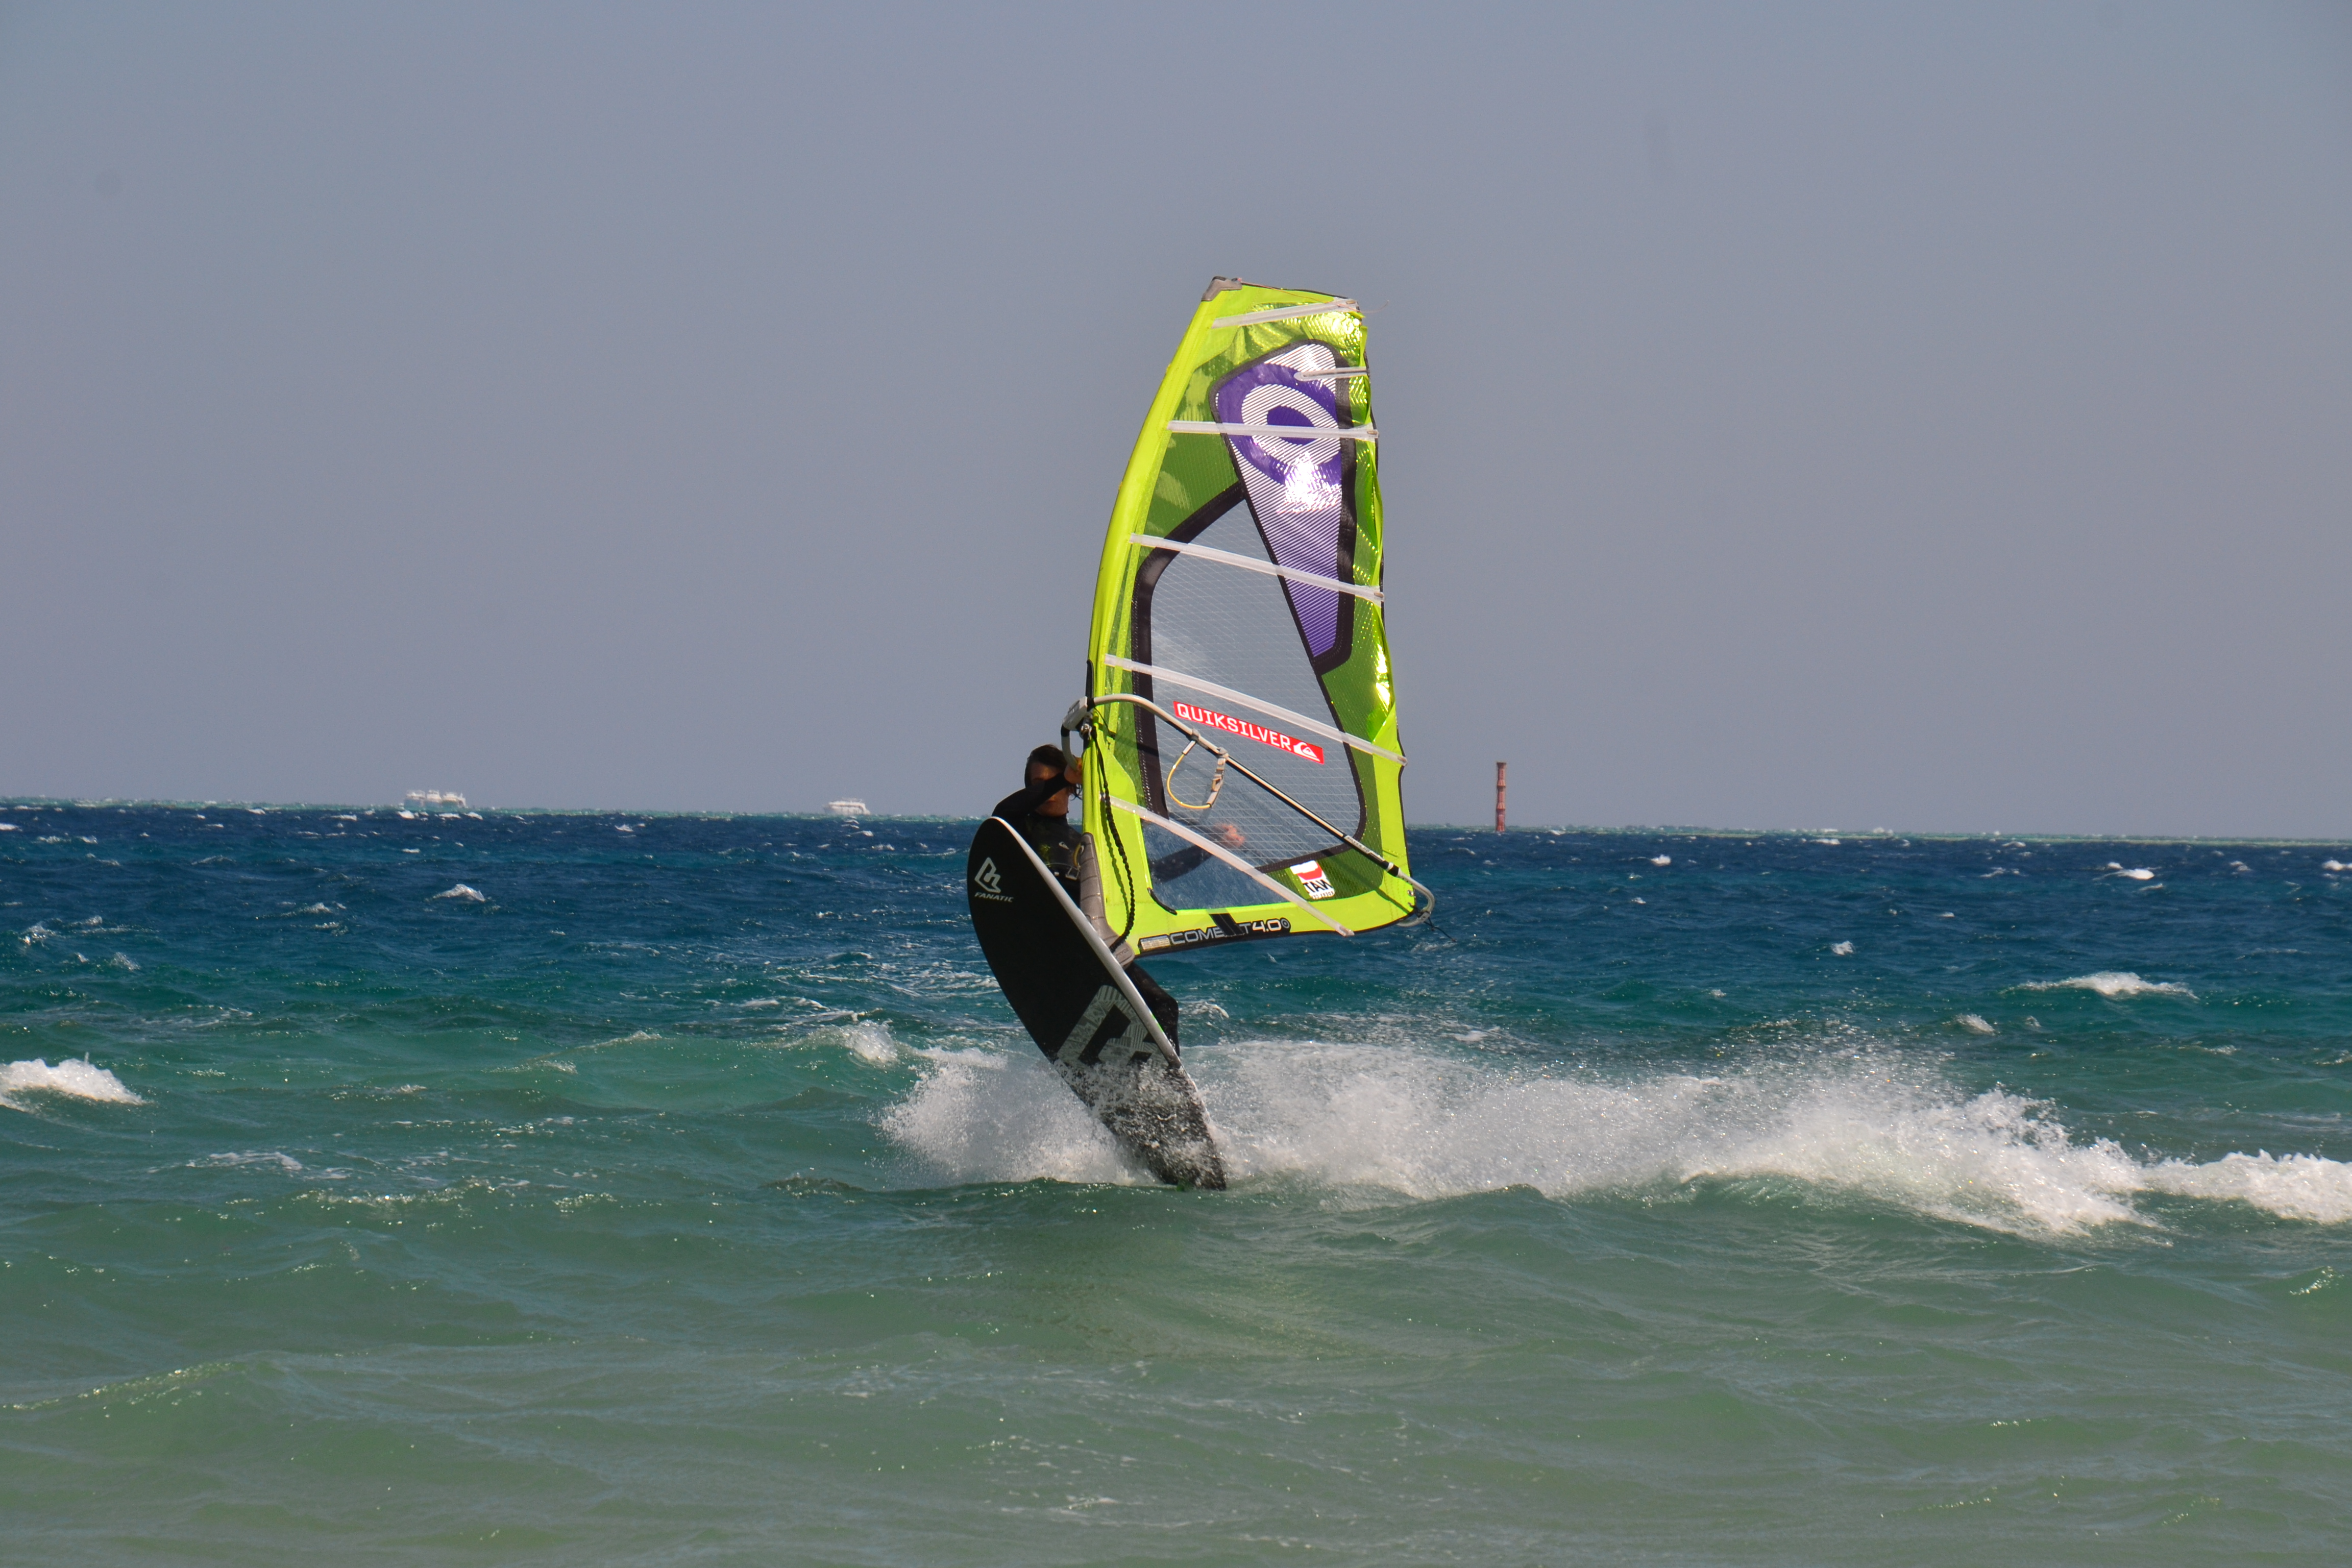 VDWS Windsurf Instructor for Safaga / Soma Bay starting from